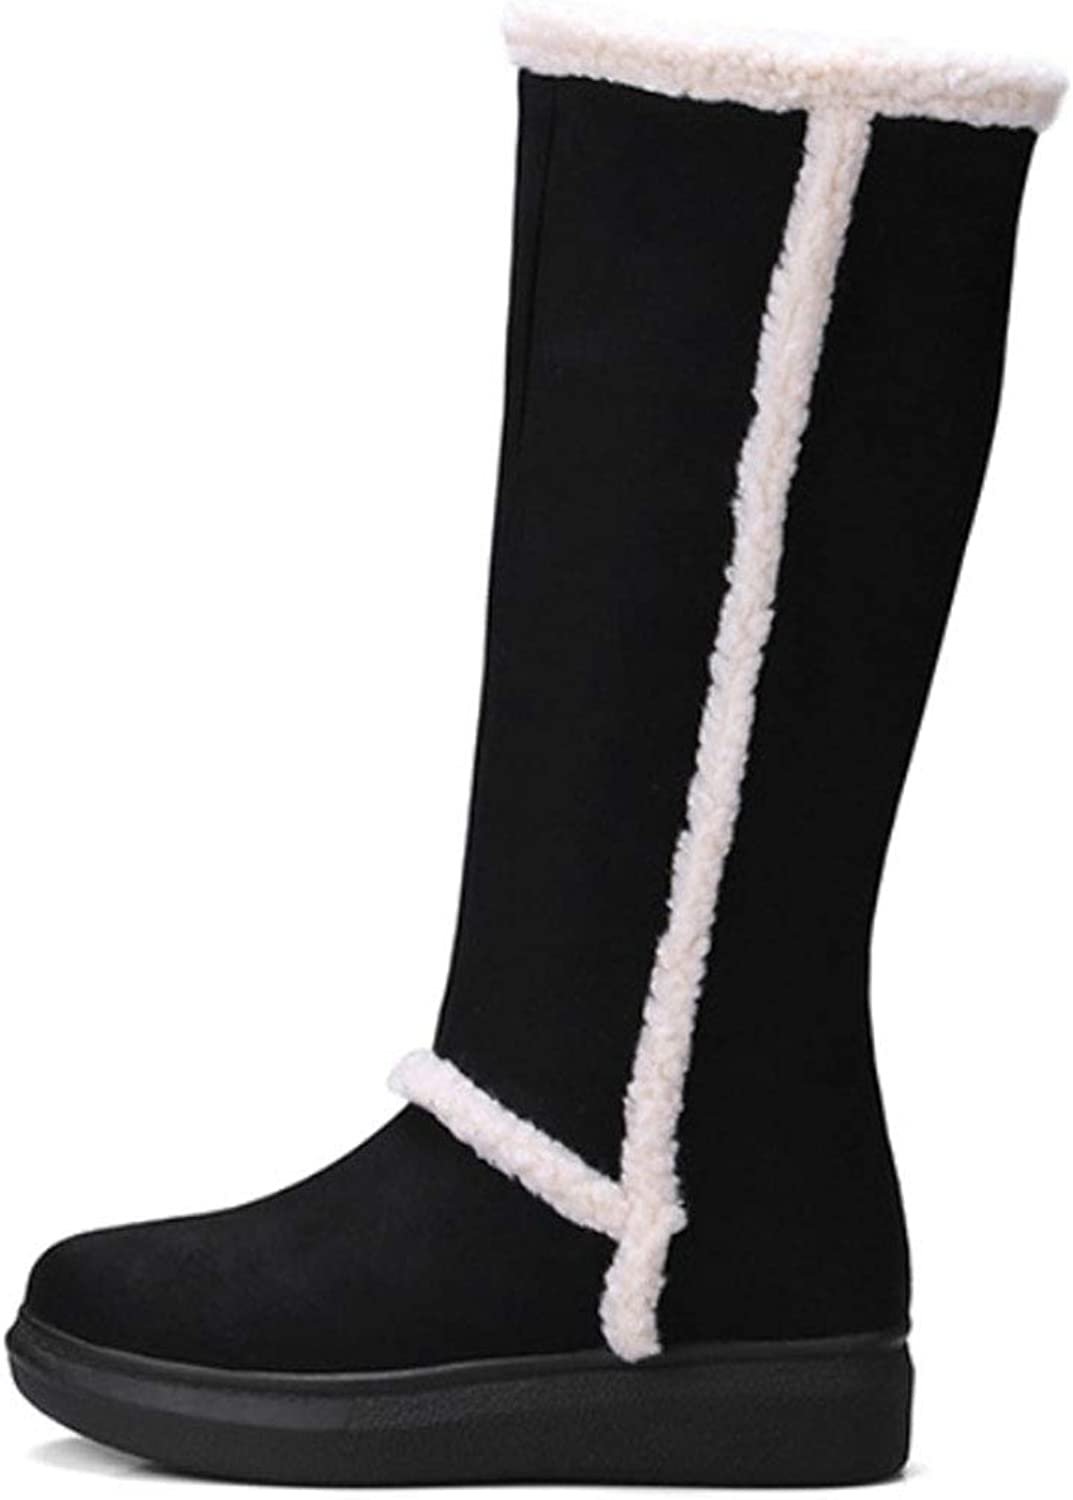 Women's Winter Cotton Boots, Plush Surface, Thick Warm, High Tube Snow Boots, Flat Round Head Boots